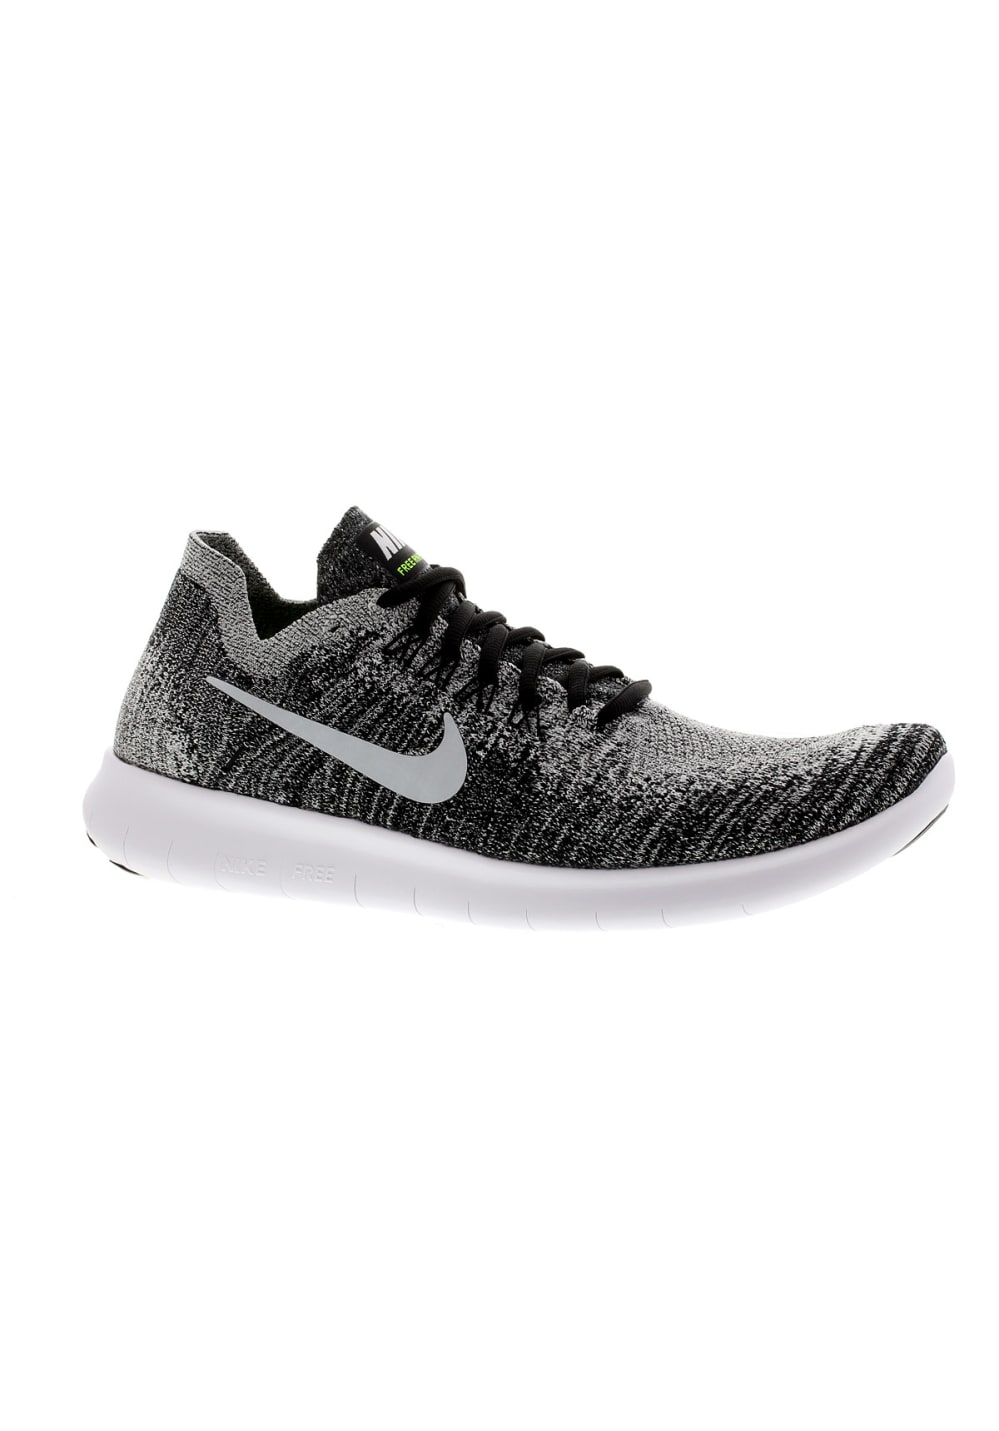 huge selection of 6d349 1bb77 Nike Free RN Flyknit 2017 - Running shoes for Men - Grey